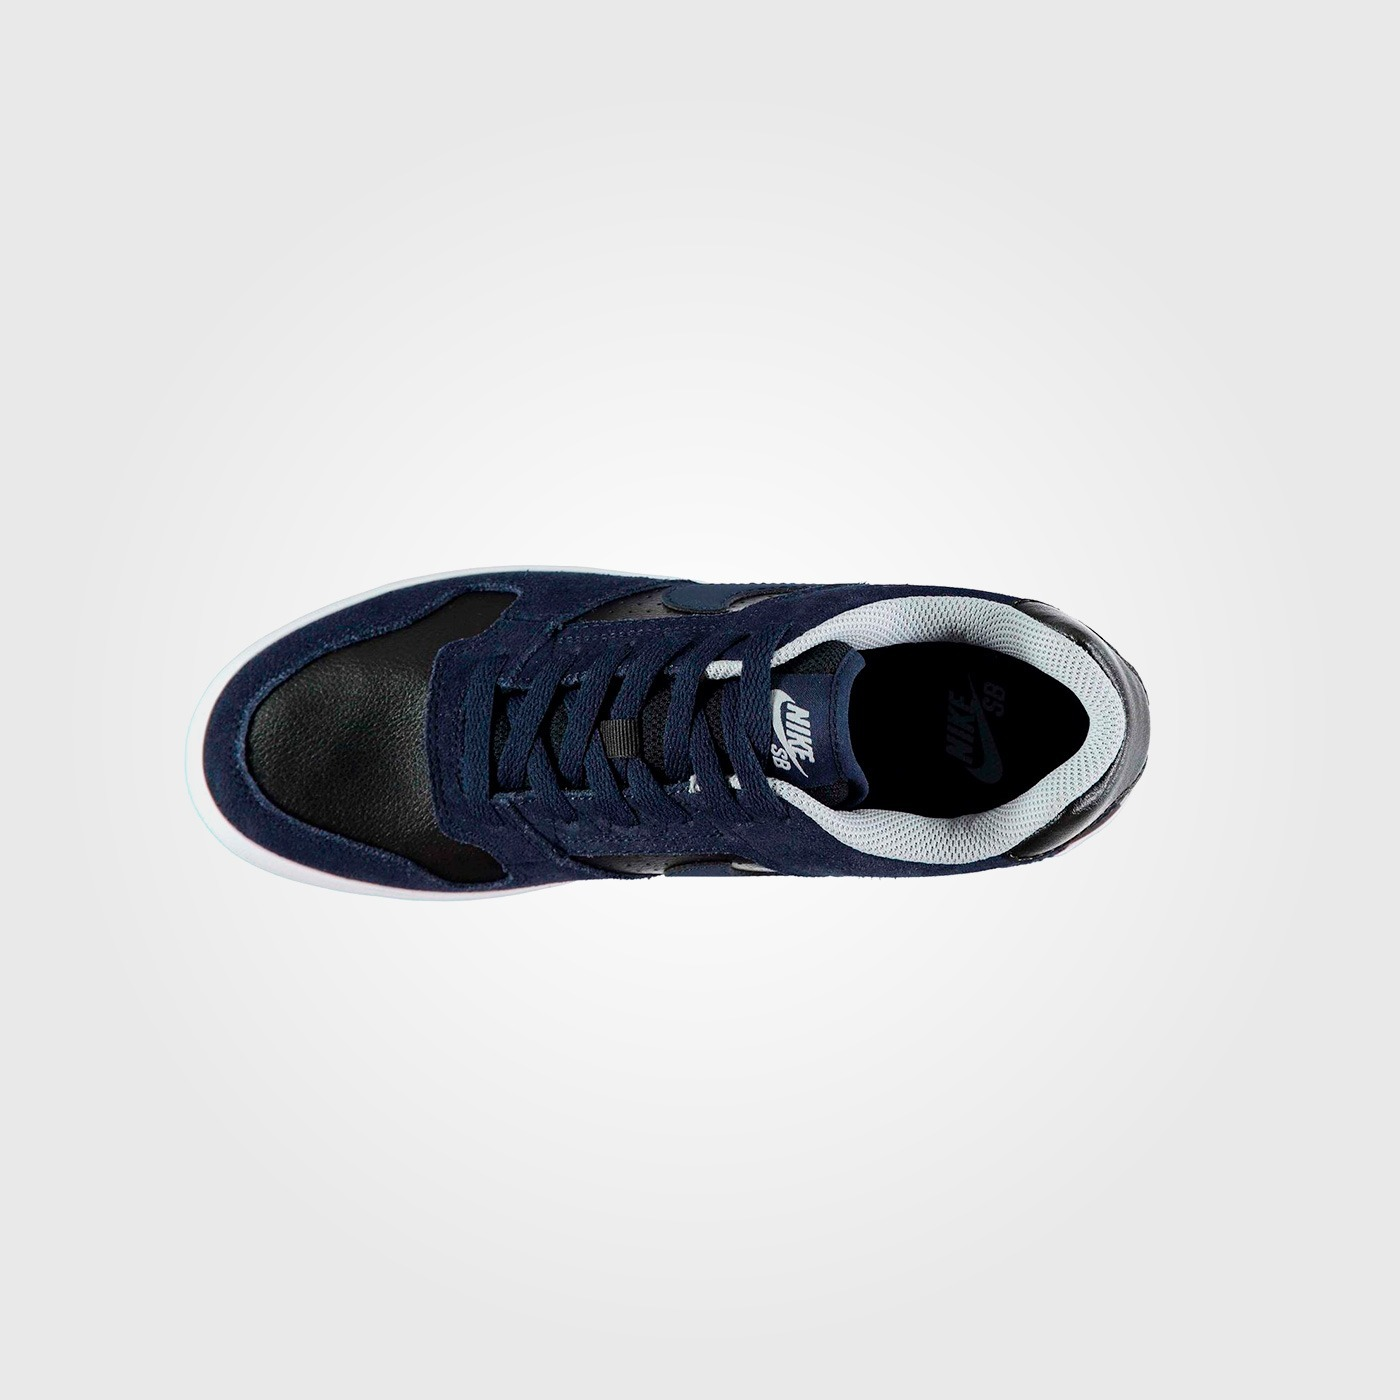 Кроссовки Nike Skateboard Delta Force Mens Skate Navy/Black